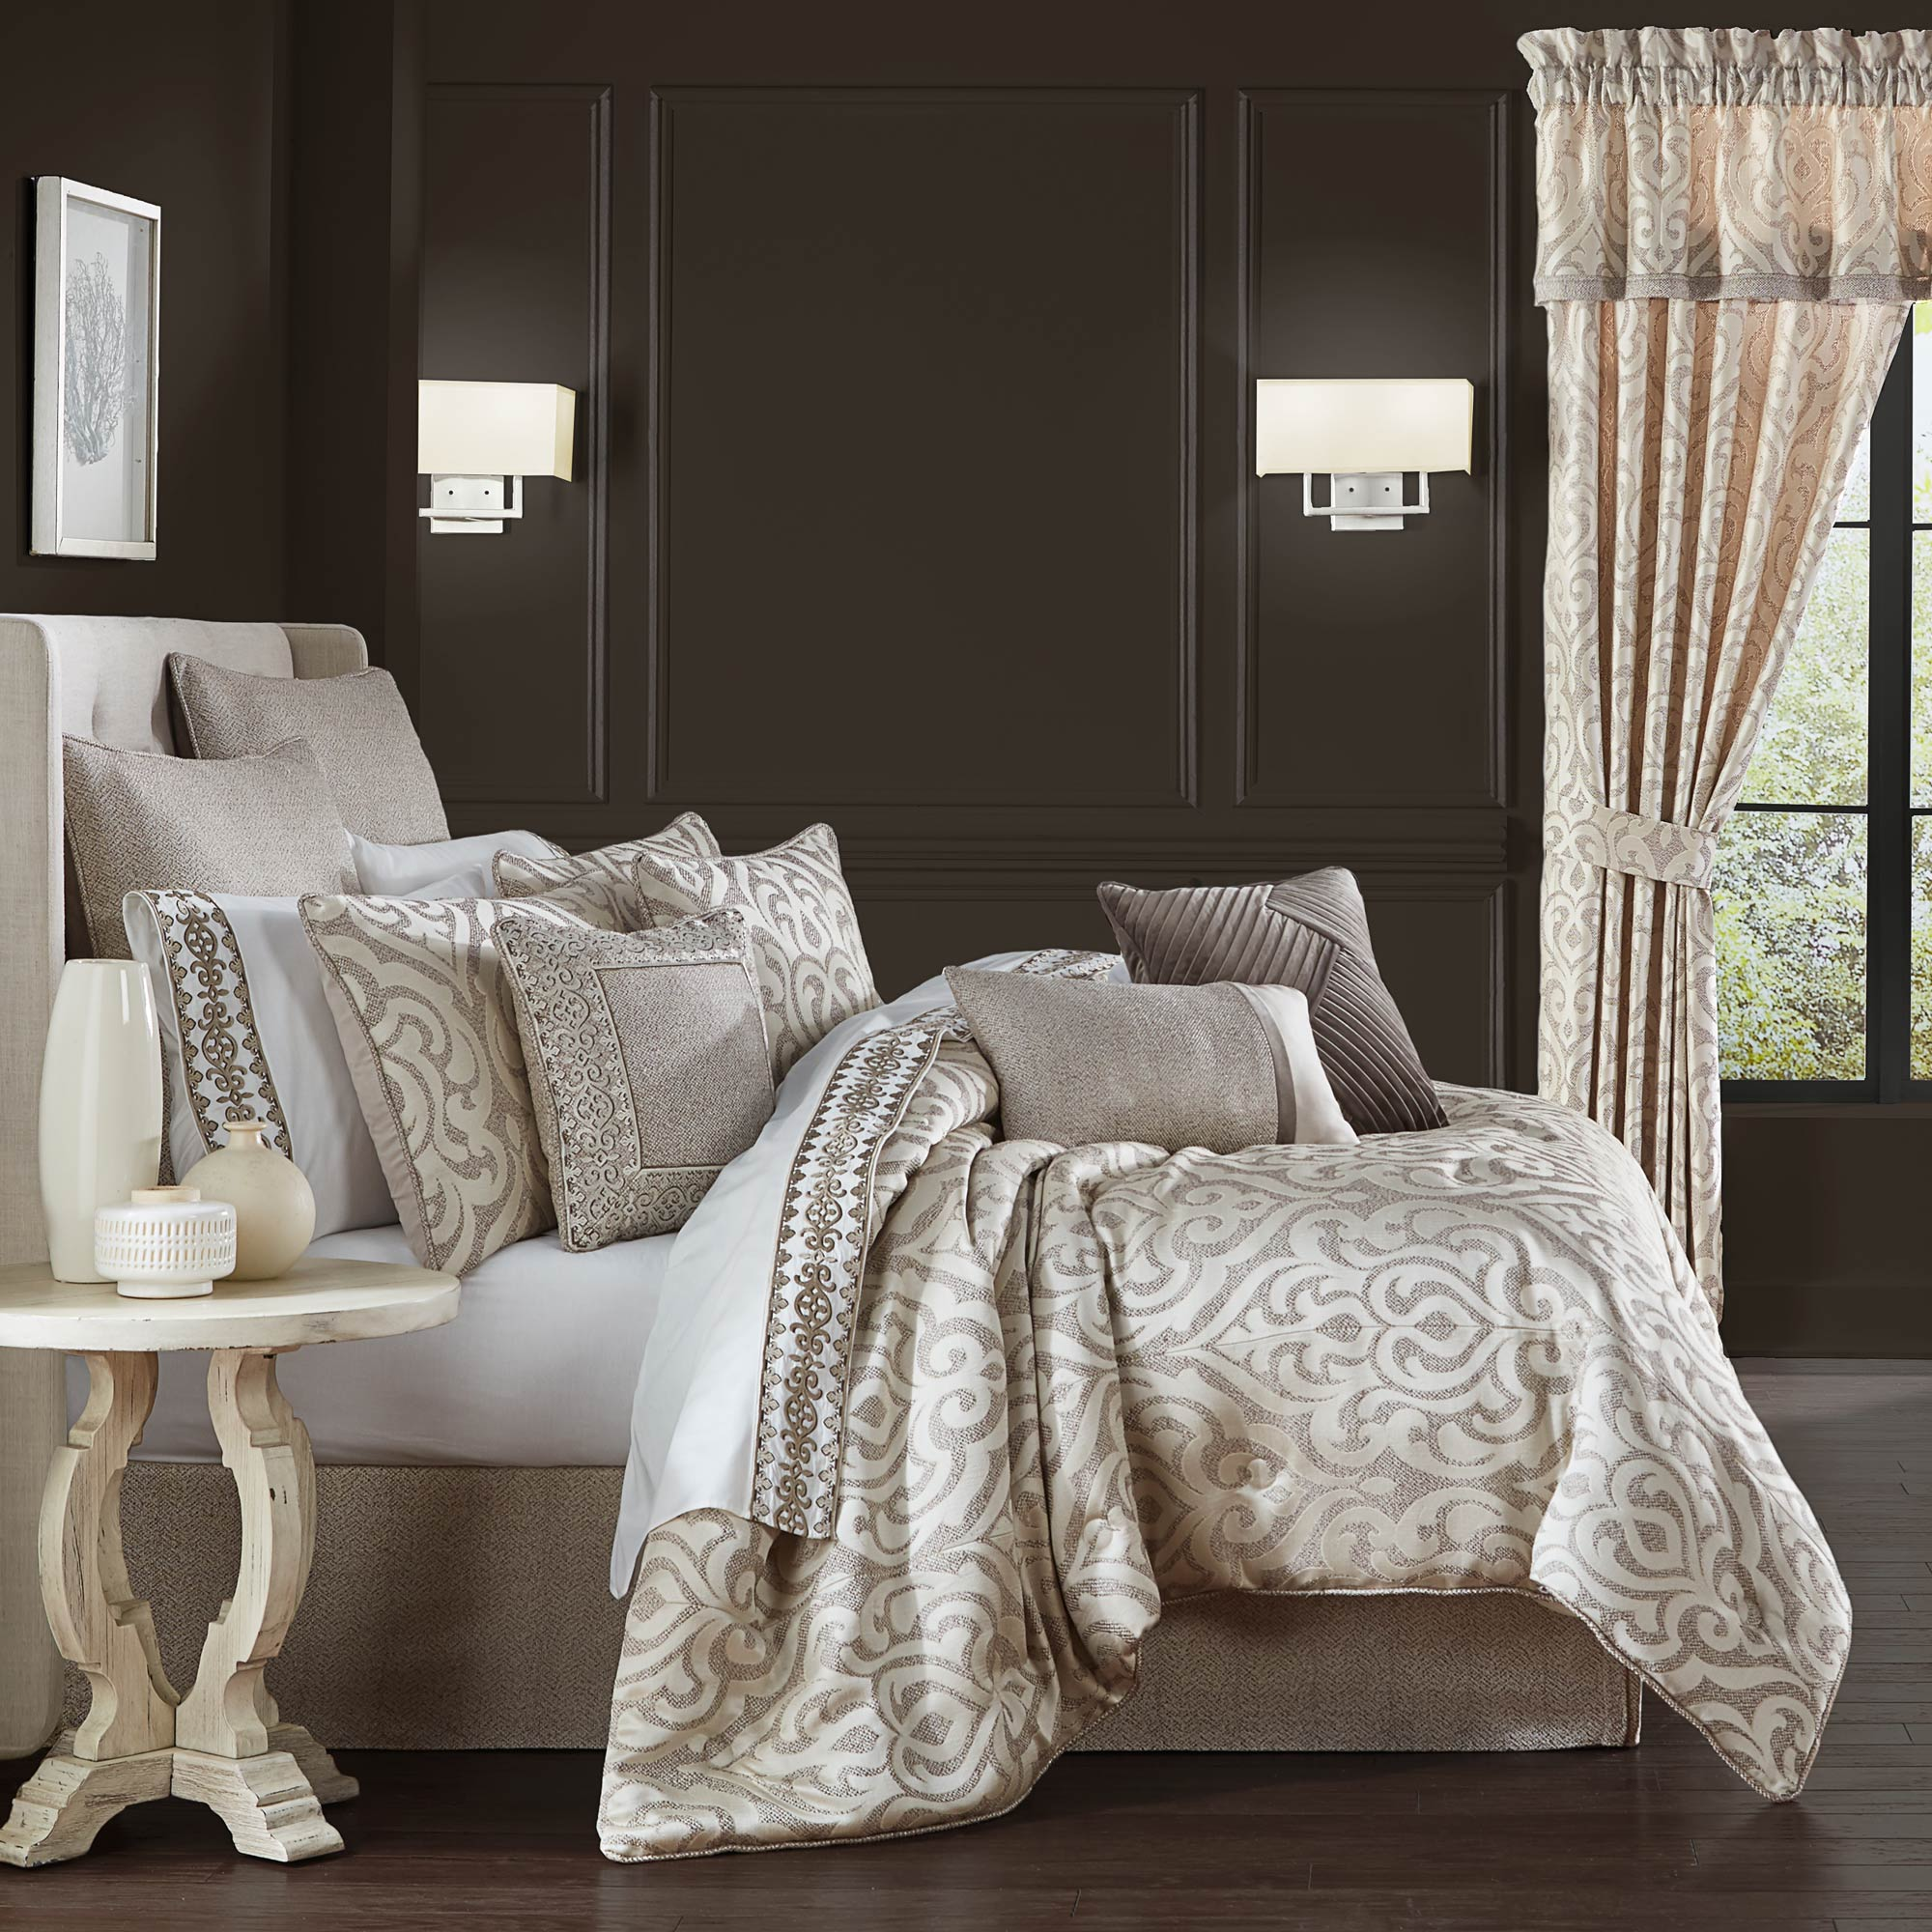 Milan Oatmeal Queen 4 Pieces Comforter Set